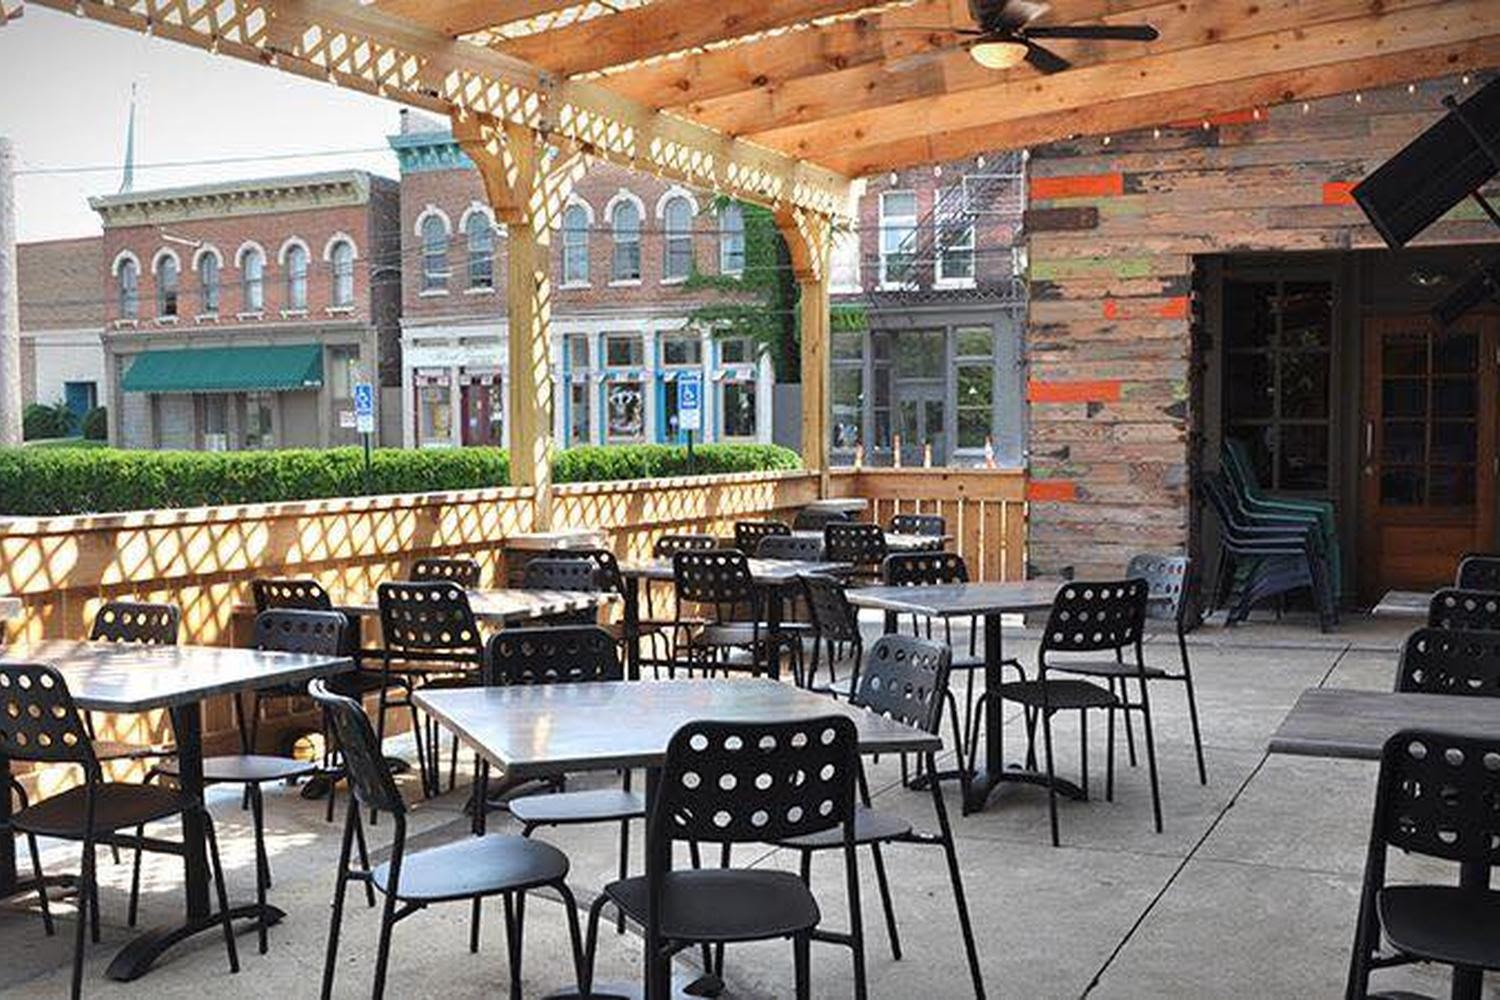 A photo of the outdoor dining at Wheat Penny Oven and Bar located in Dayton, Ohio.